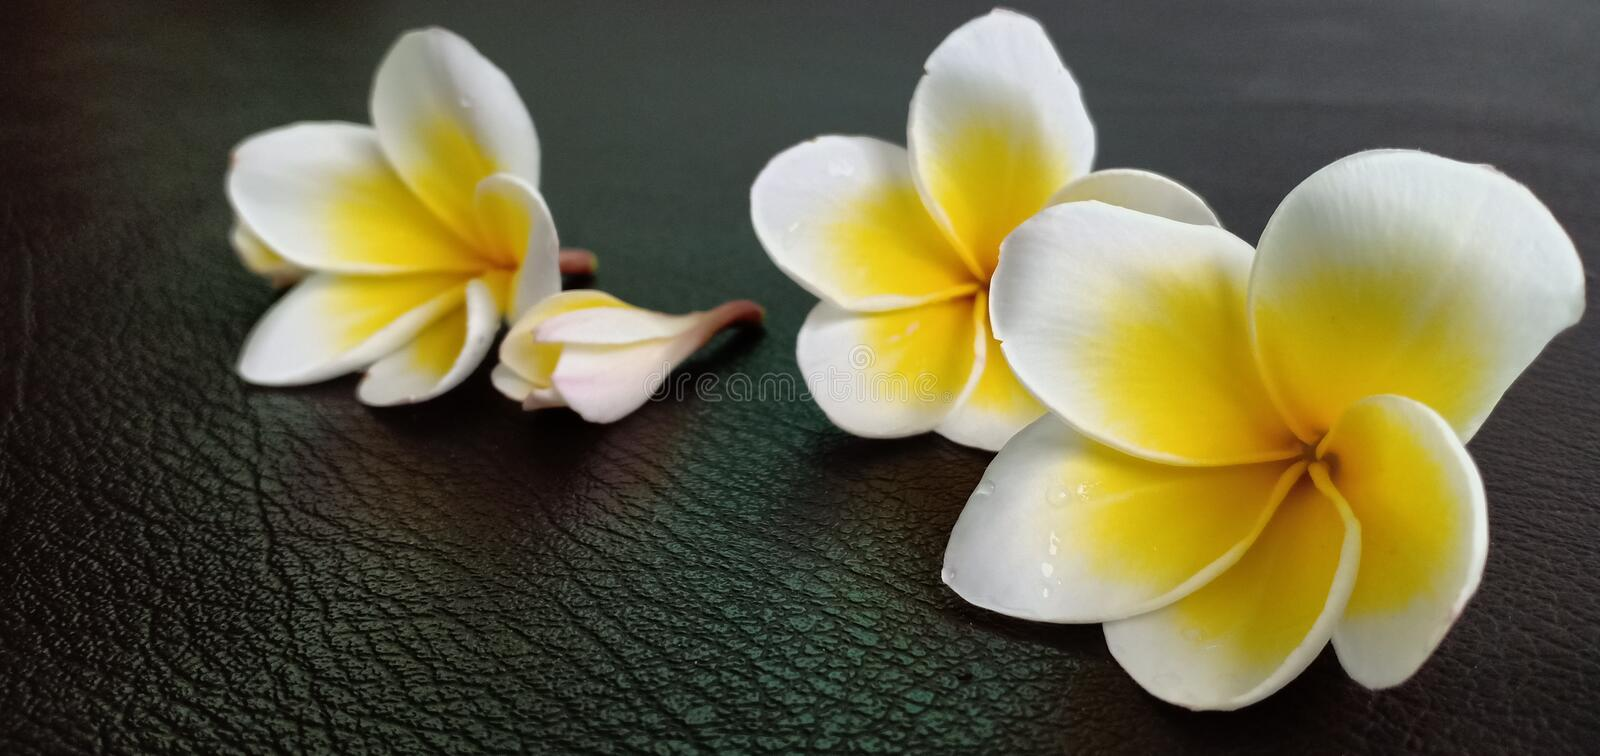 Champaka white flowers. On the leather floor stock photo